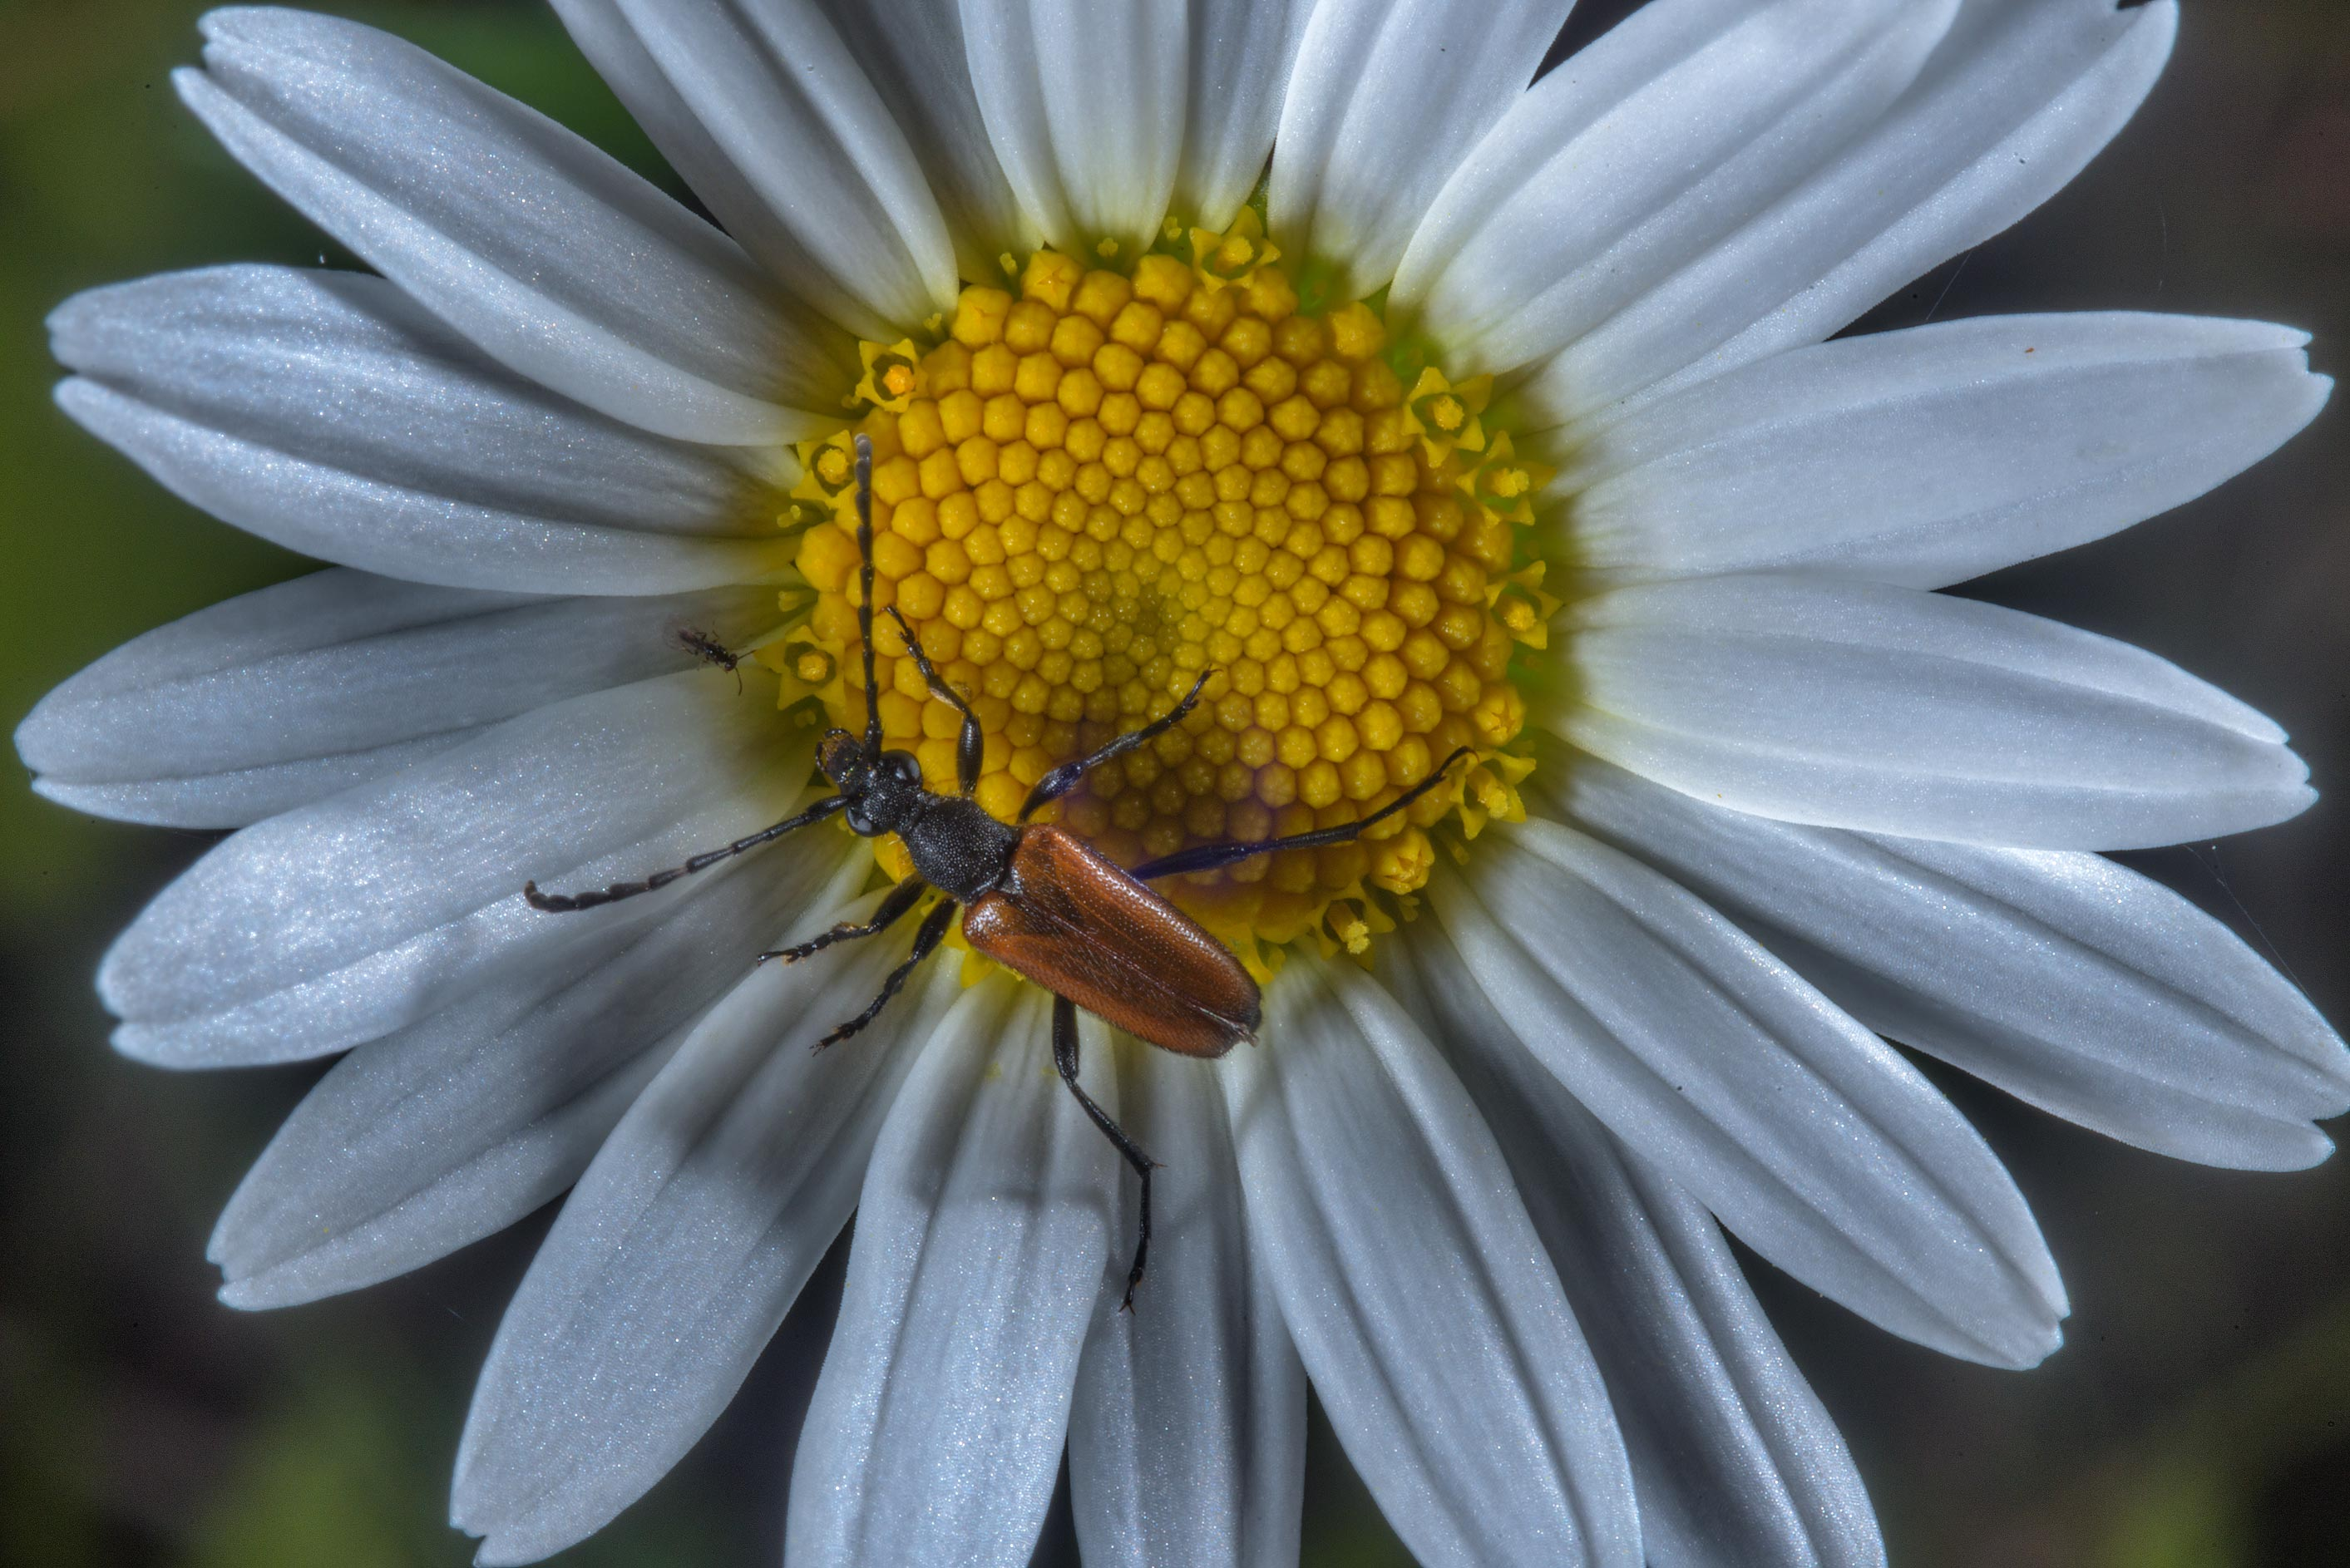 Brown beetle on a daisy flower in Posiolok near Vyritsa, south from St.Petersburg, Russia